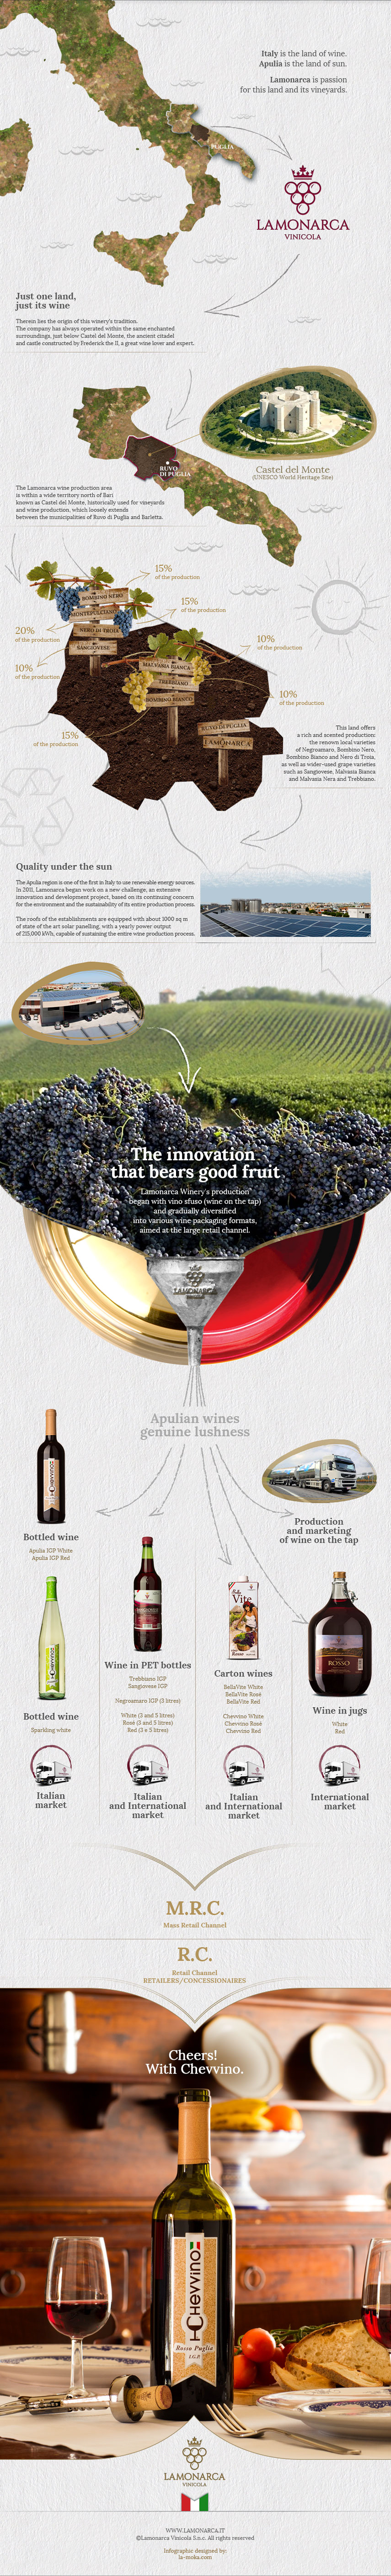 LAMONARCA_ITALIAN_WINE_website_2015_INFOGRAPHIC_apulian_wine_factory